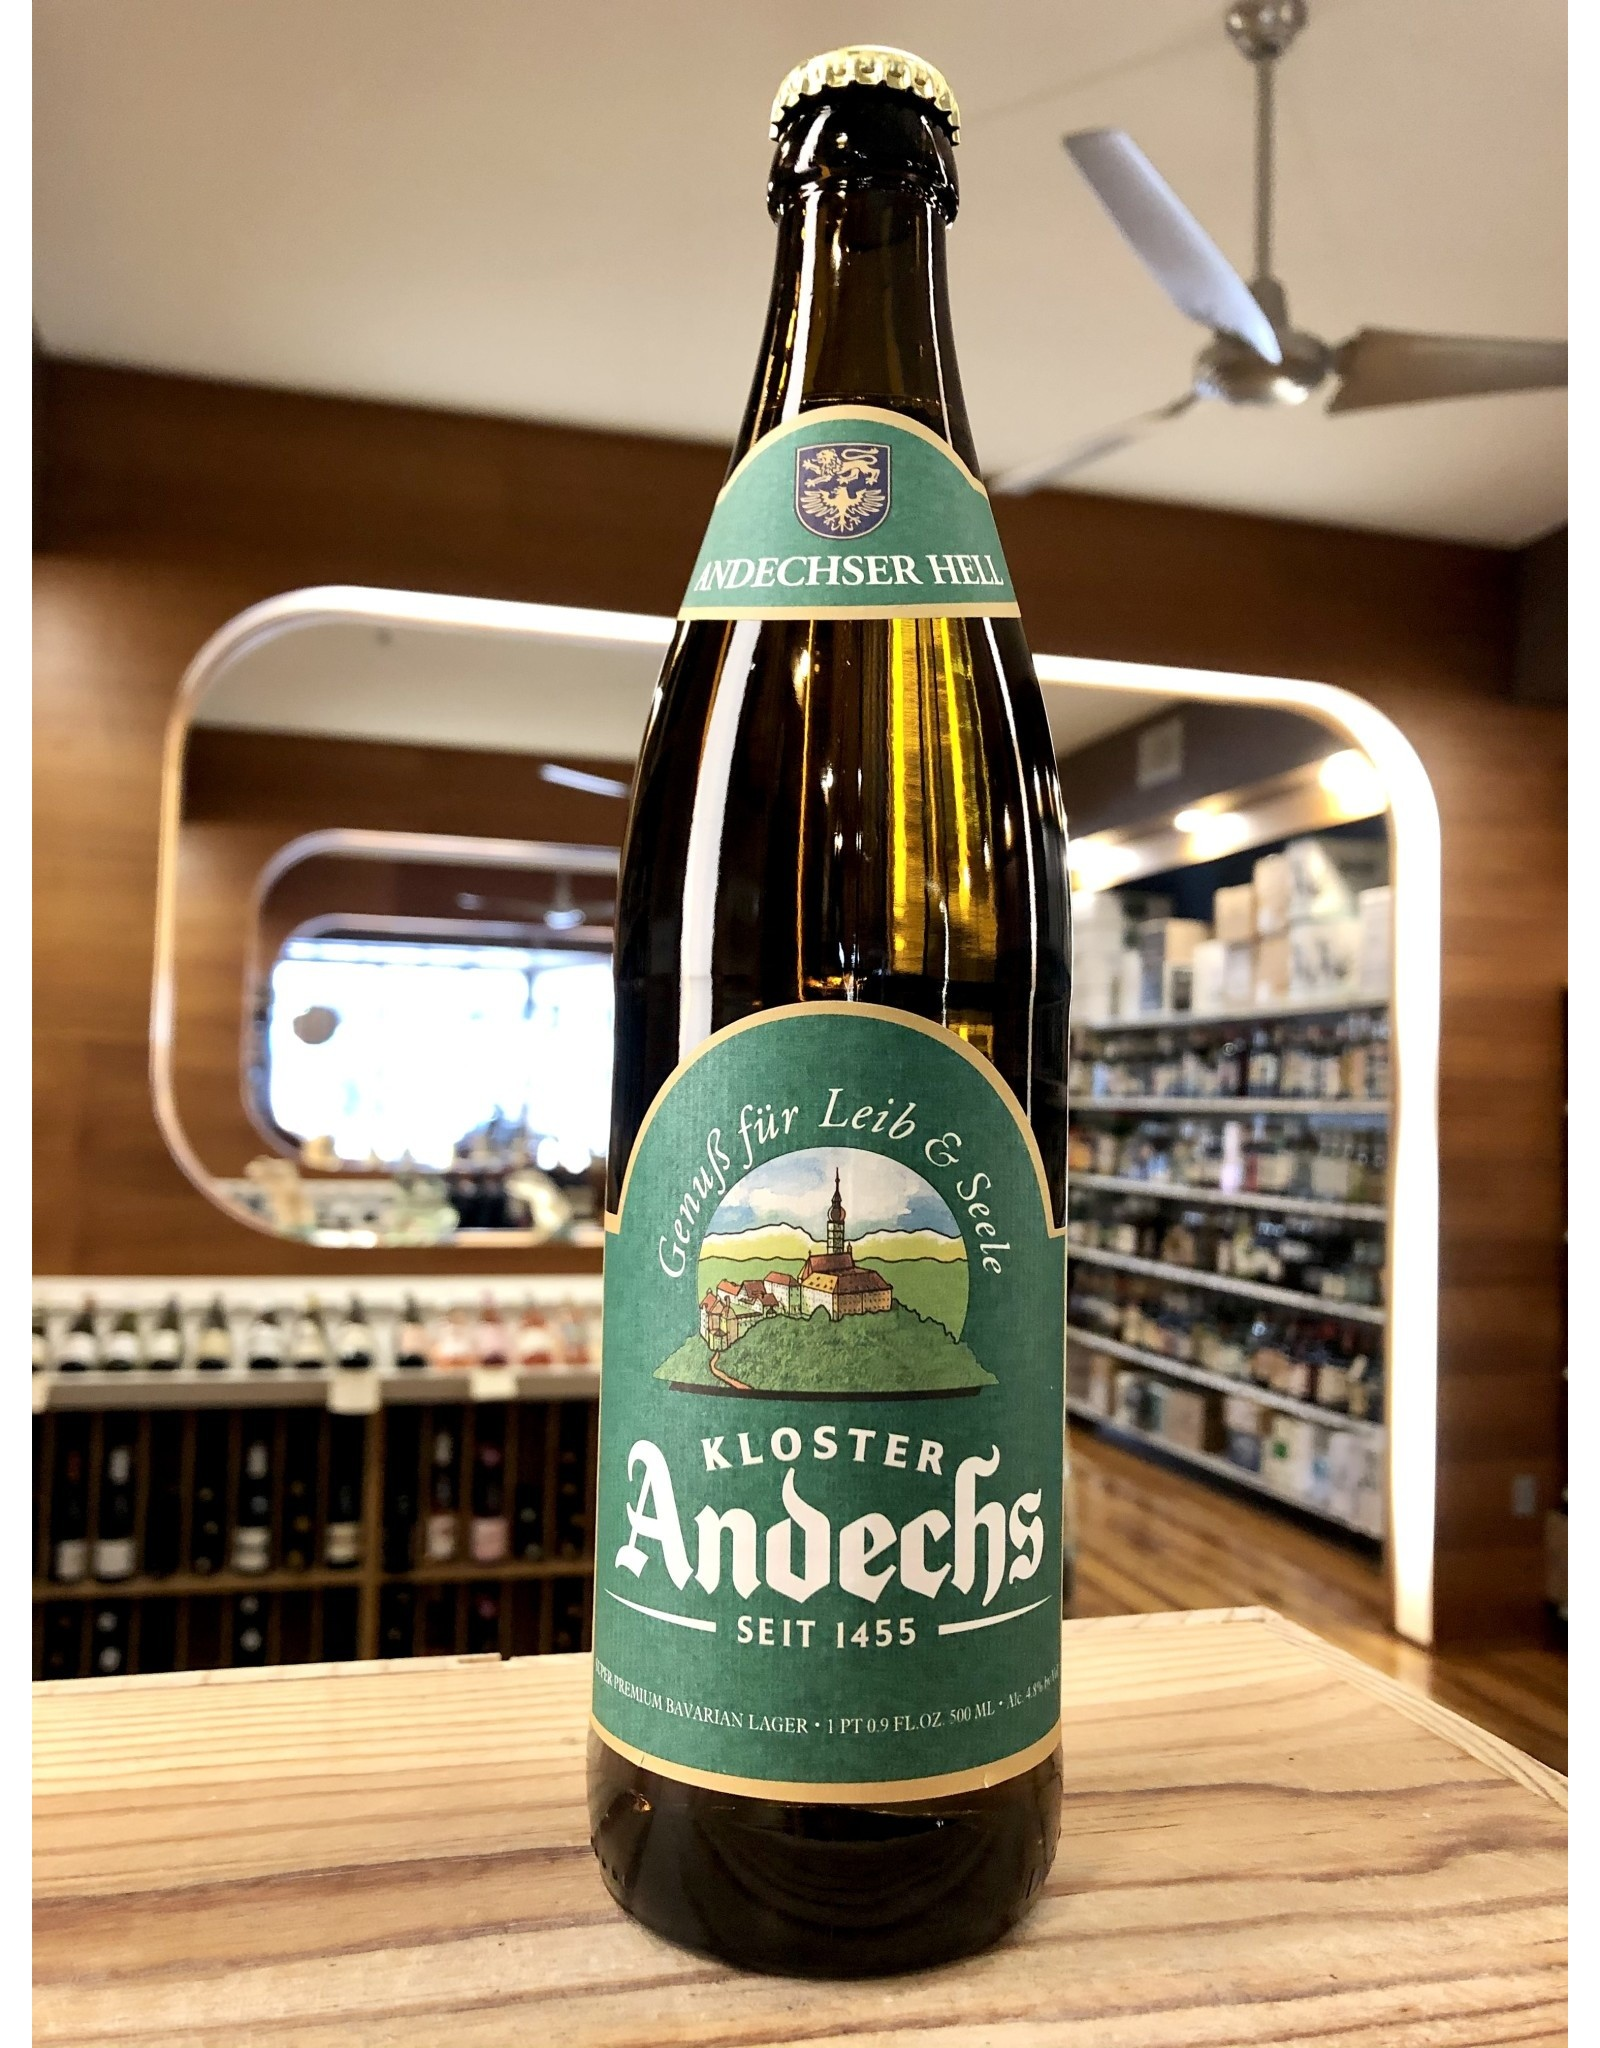 Andechs Andechser Hell Lager - 500 ML